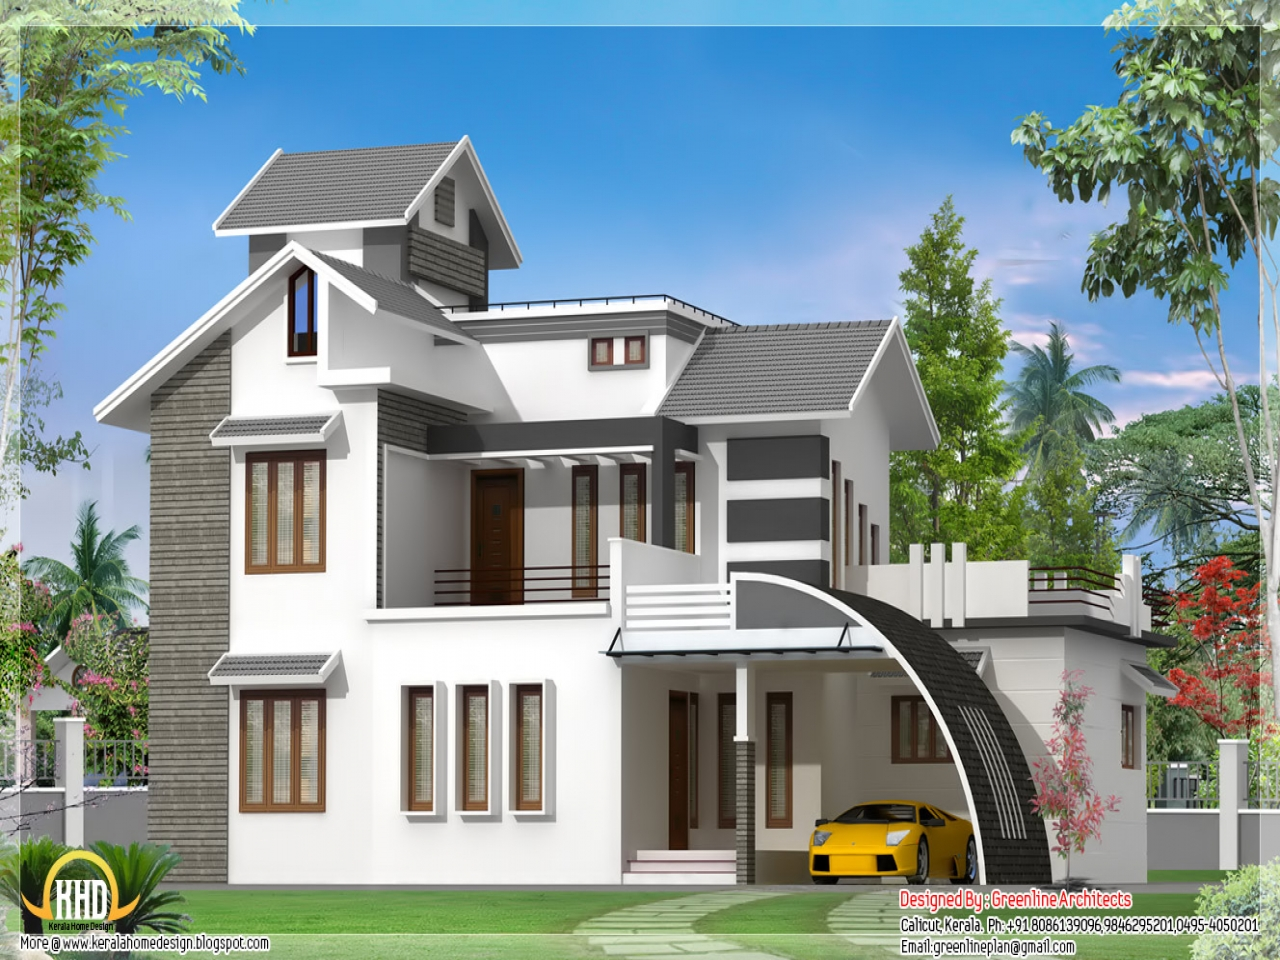 Small house designs indian style house design modern for Small house plans indian style